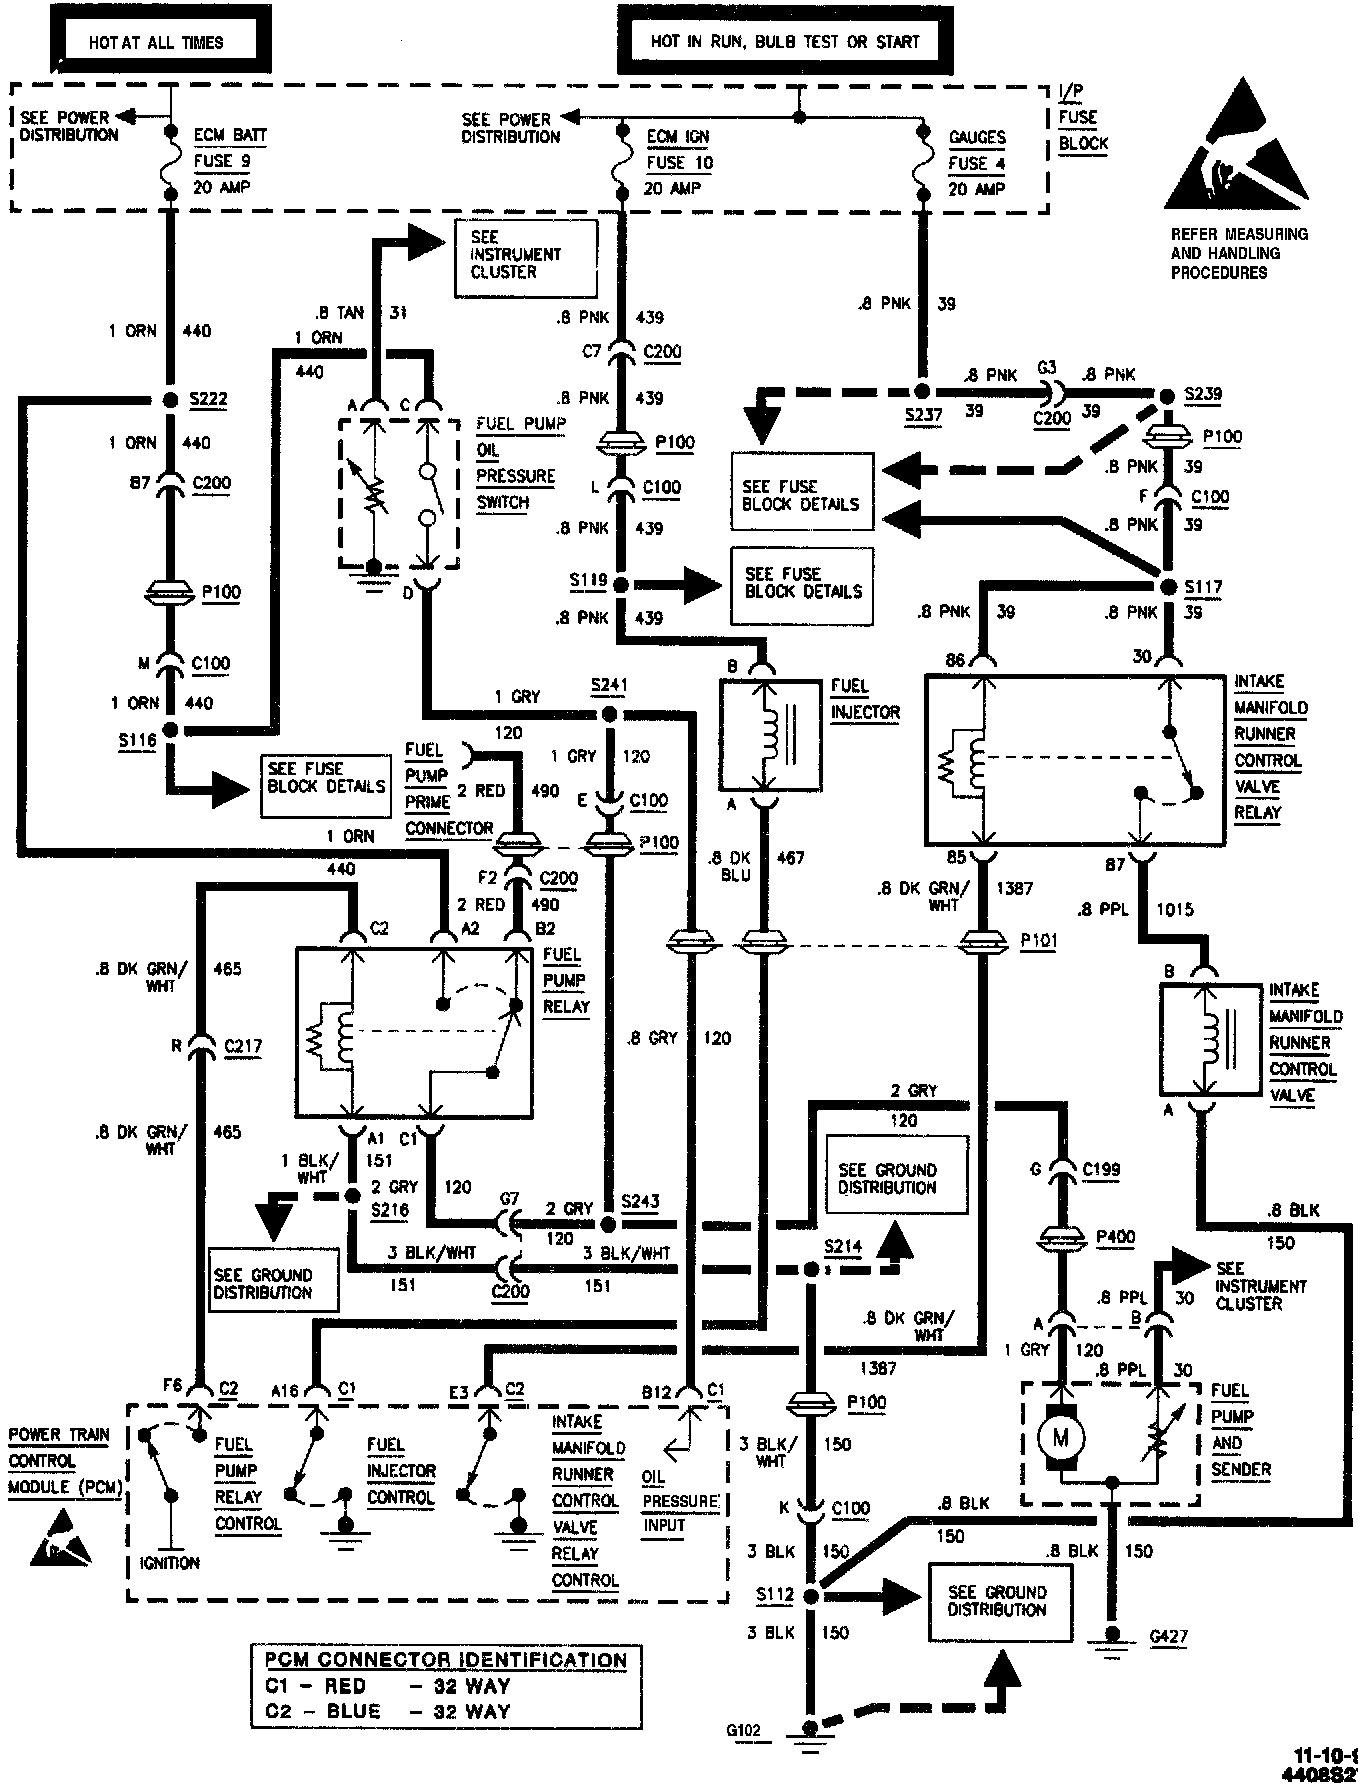 1970 chevy blazer wiring diagram wiring diagram 1999 Chevy Silverado Lifted s10 alternator wiring diagram manual e bookschevy s10 alternator wiring simple wiring diagrams10 alternator wiring diagram